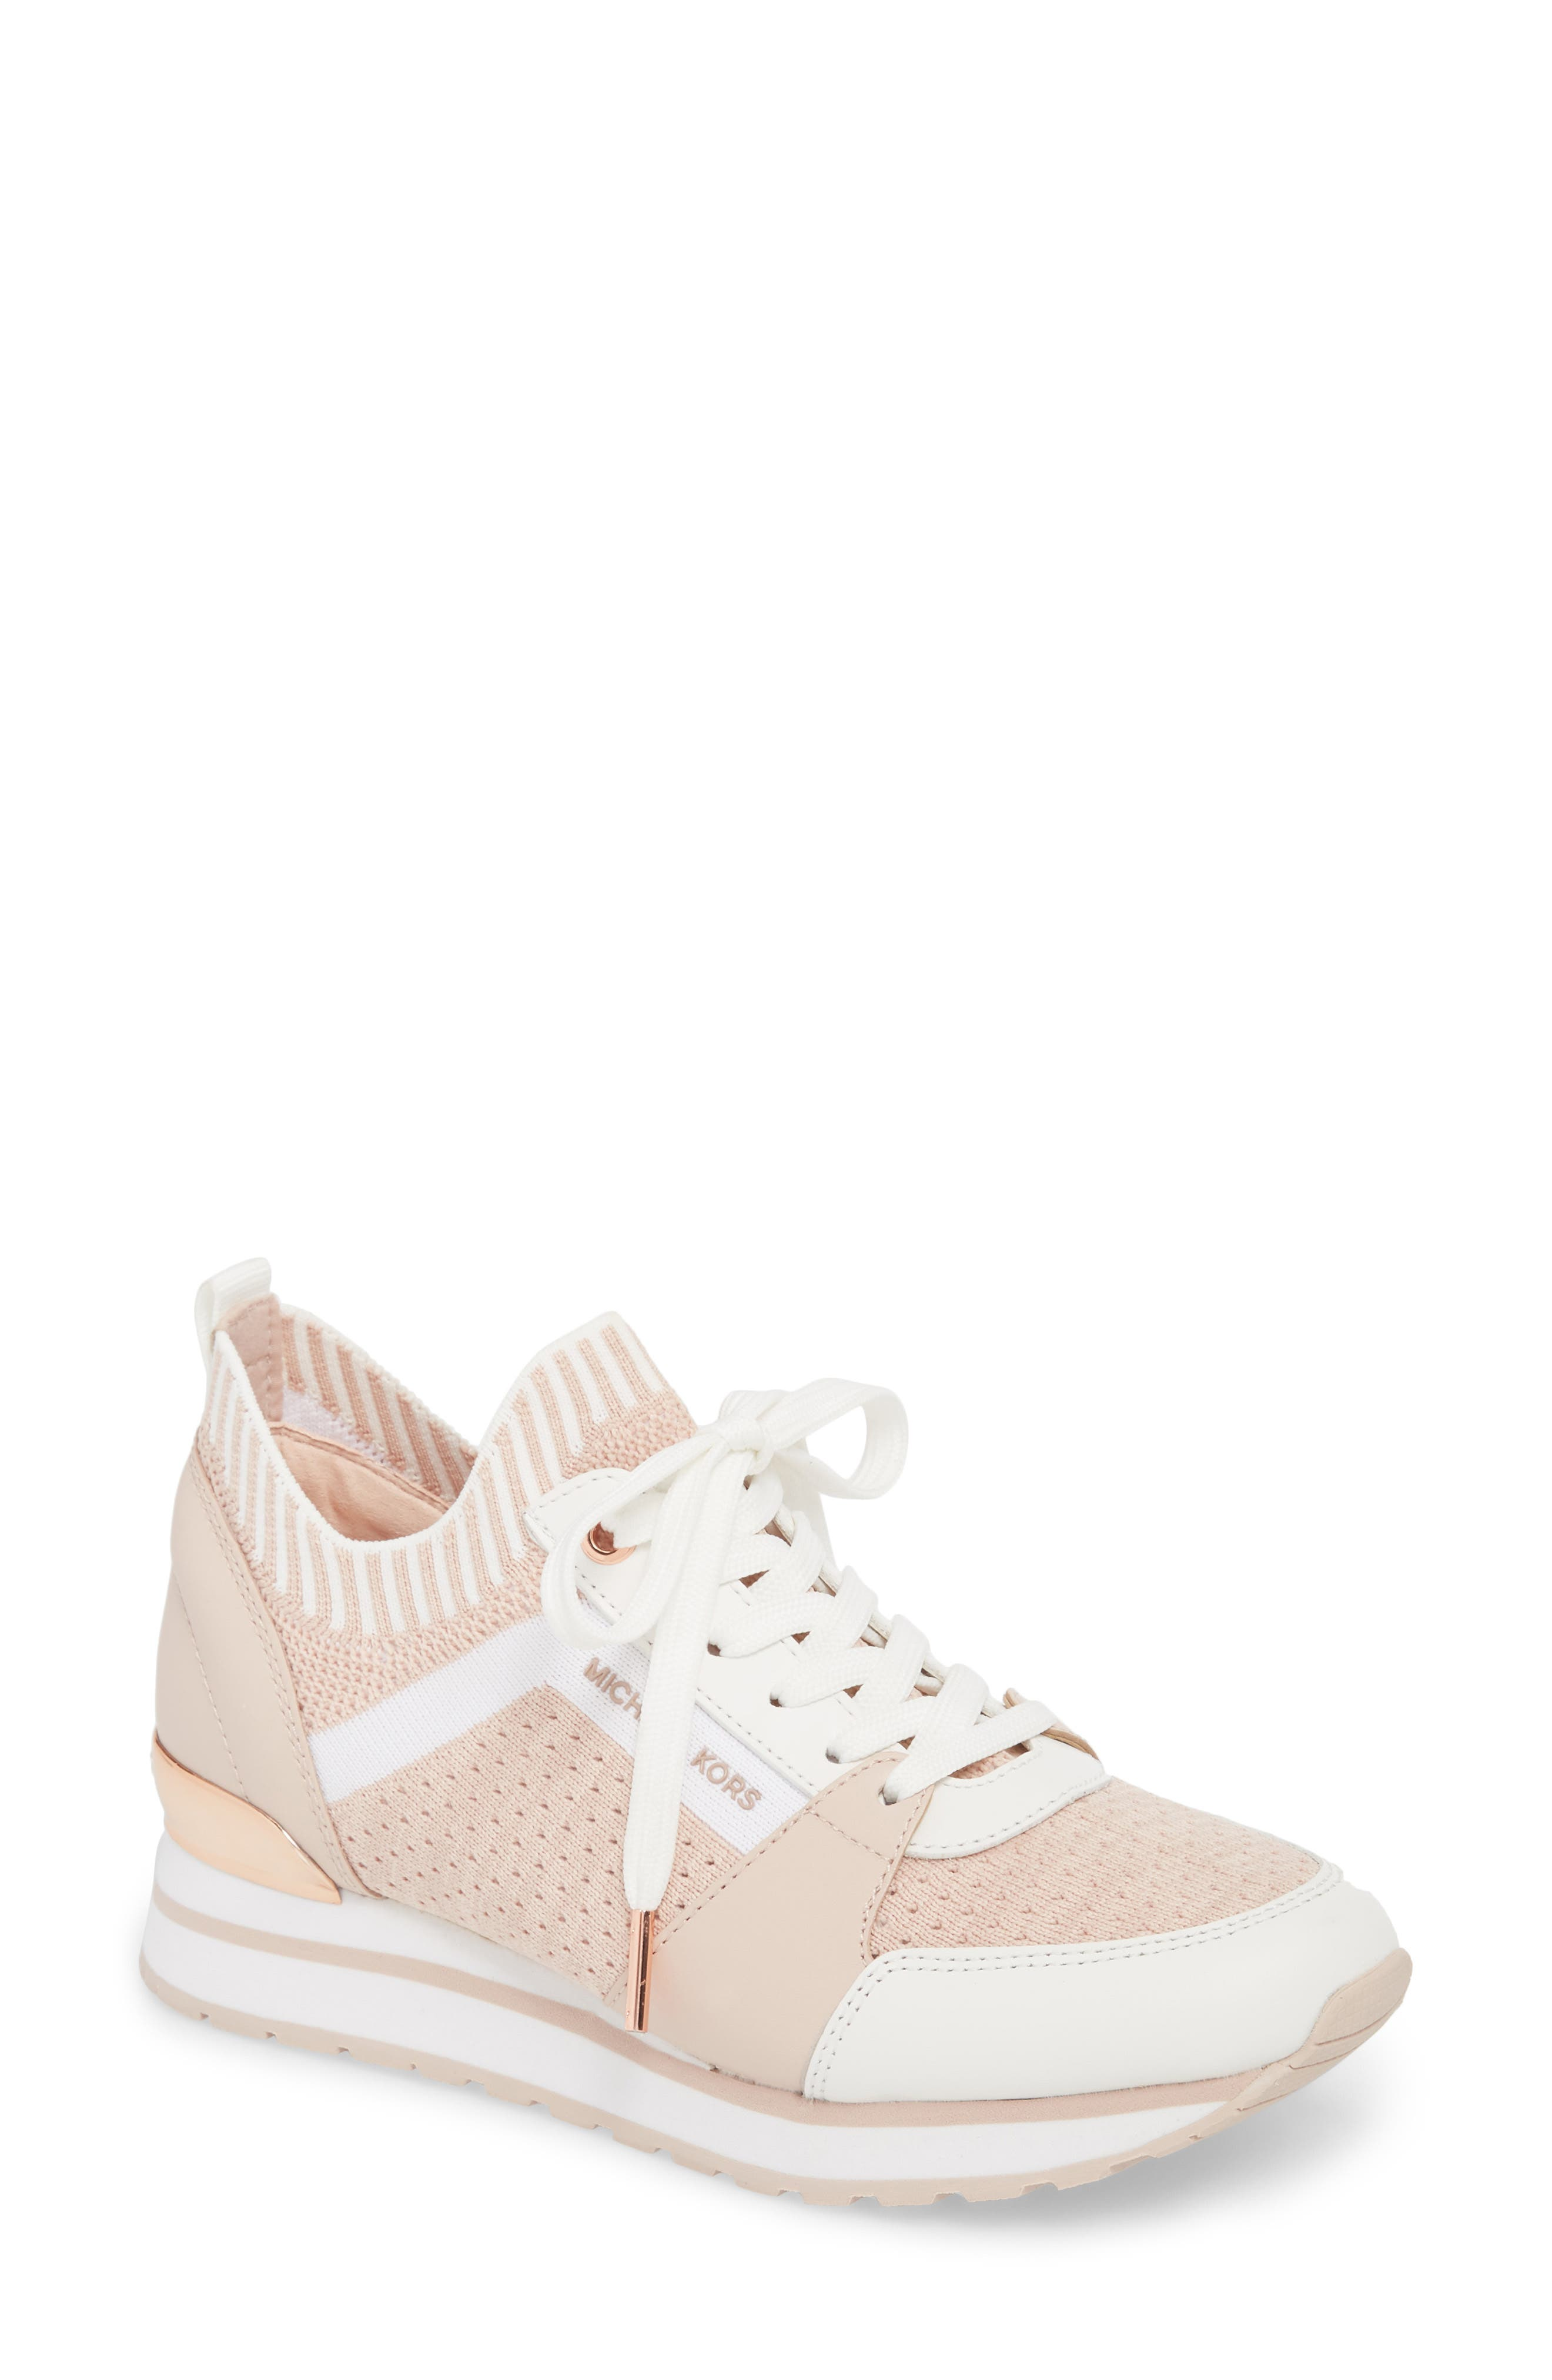 Billie Perforated Sneaker,                             Main thumbnail 1, color,                             Soft Pink Fabric